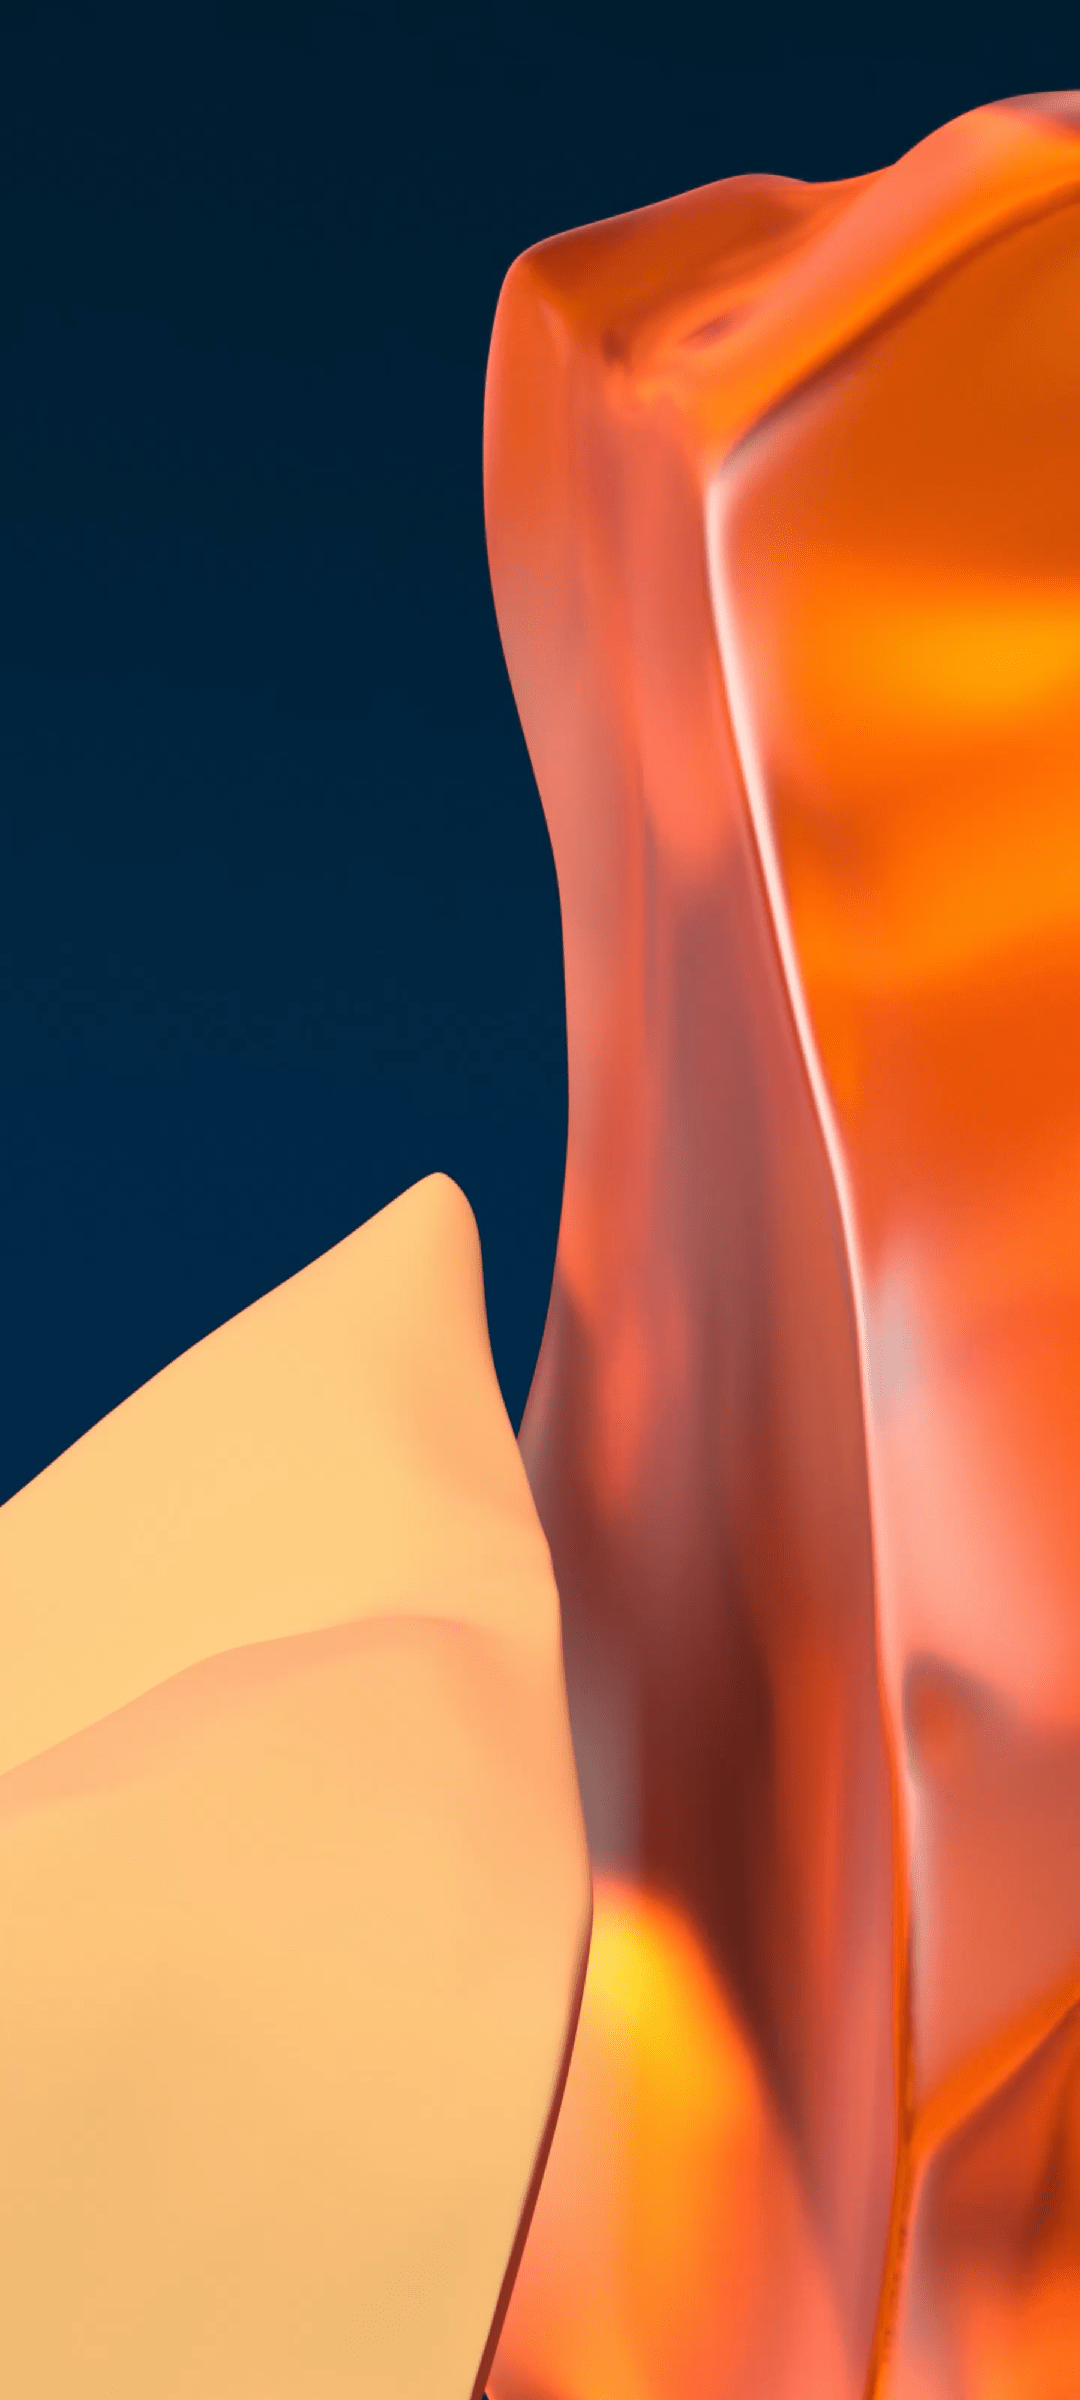 Download the OnePlus 9's new live wallpapers on any Android phone